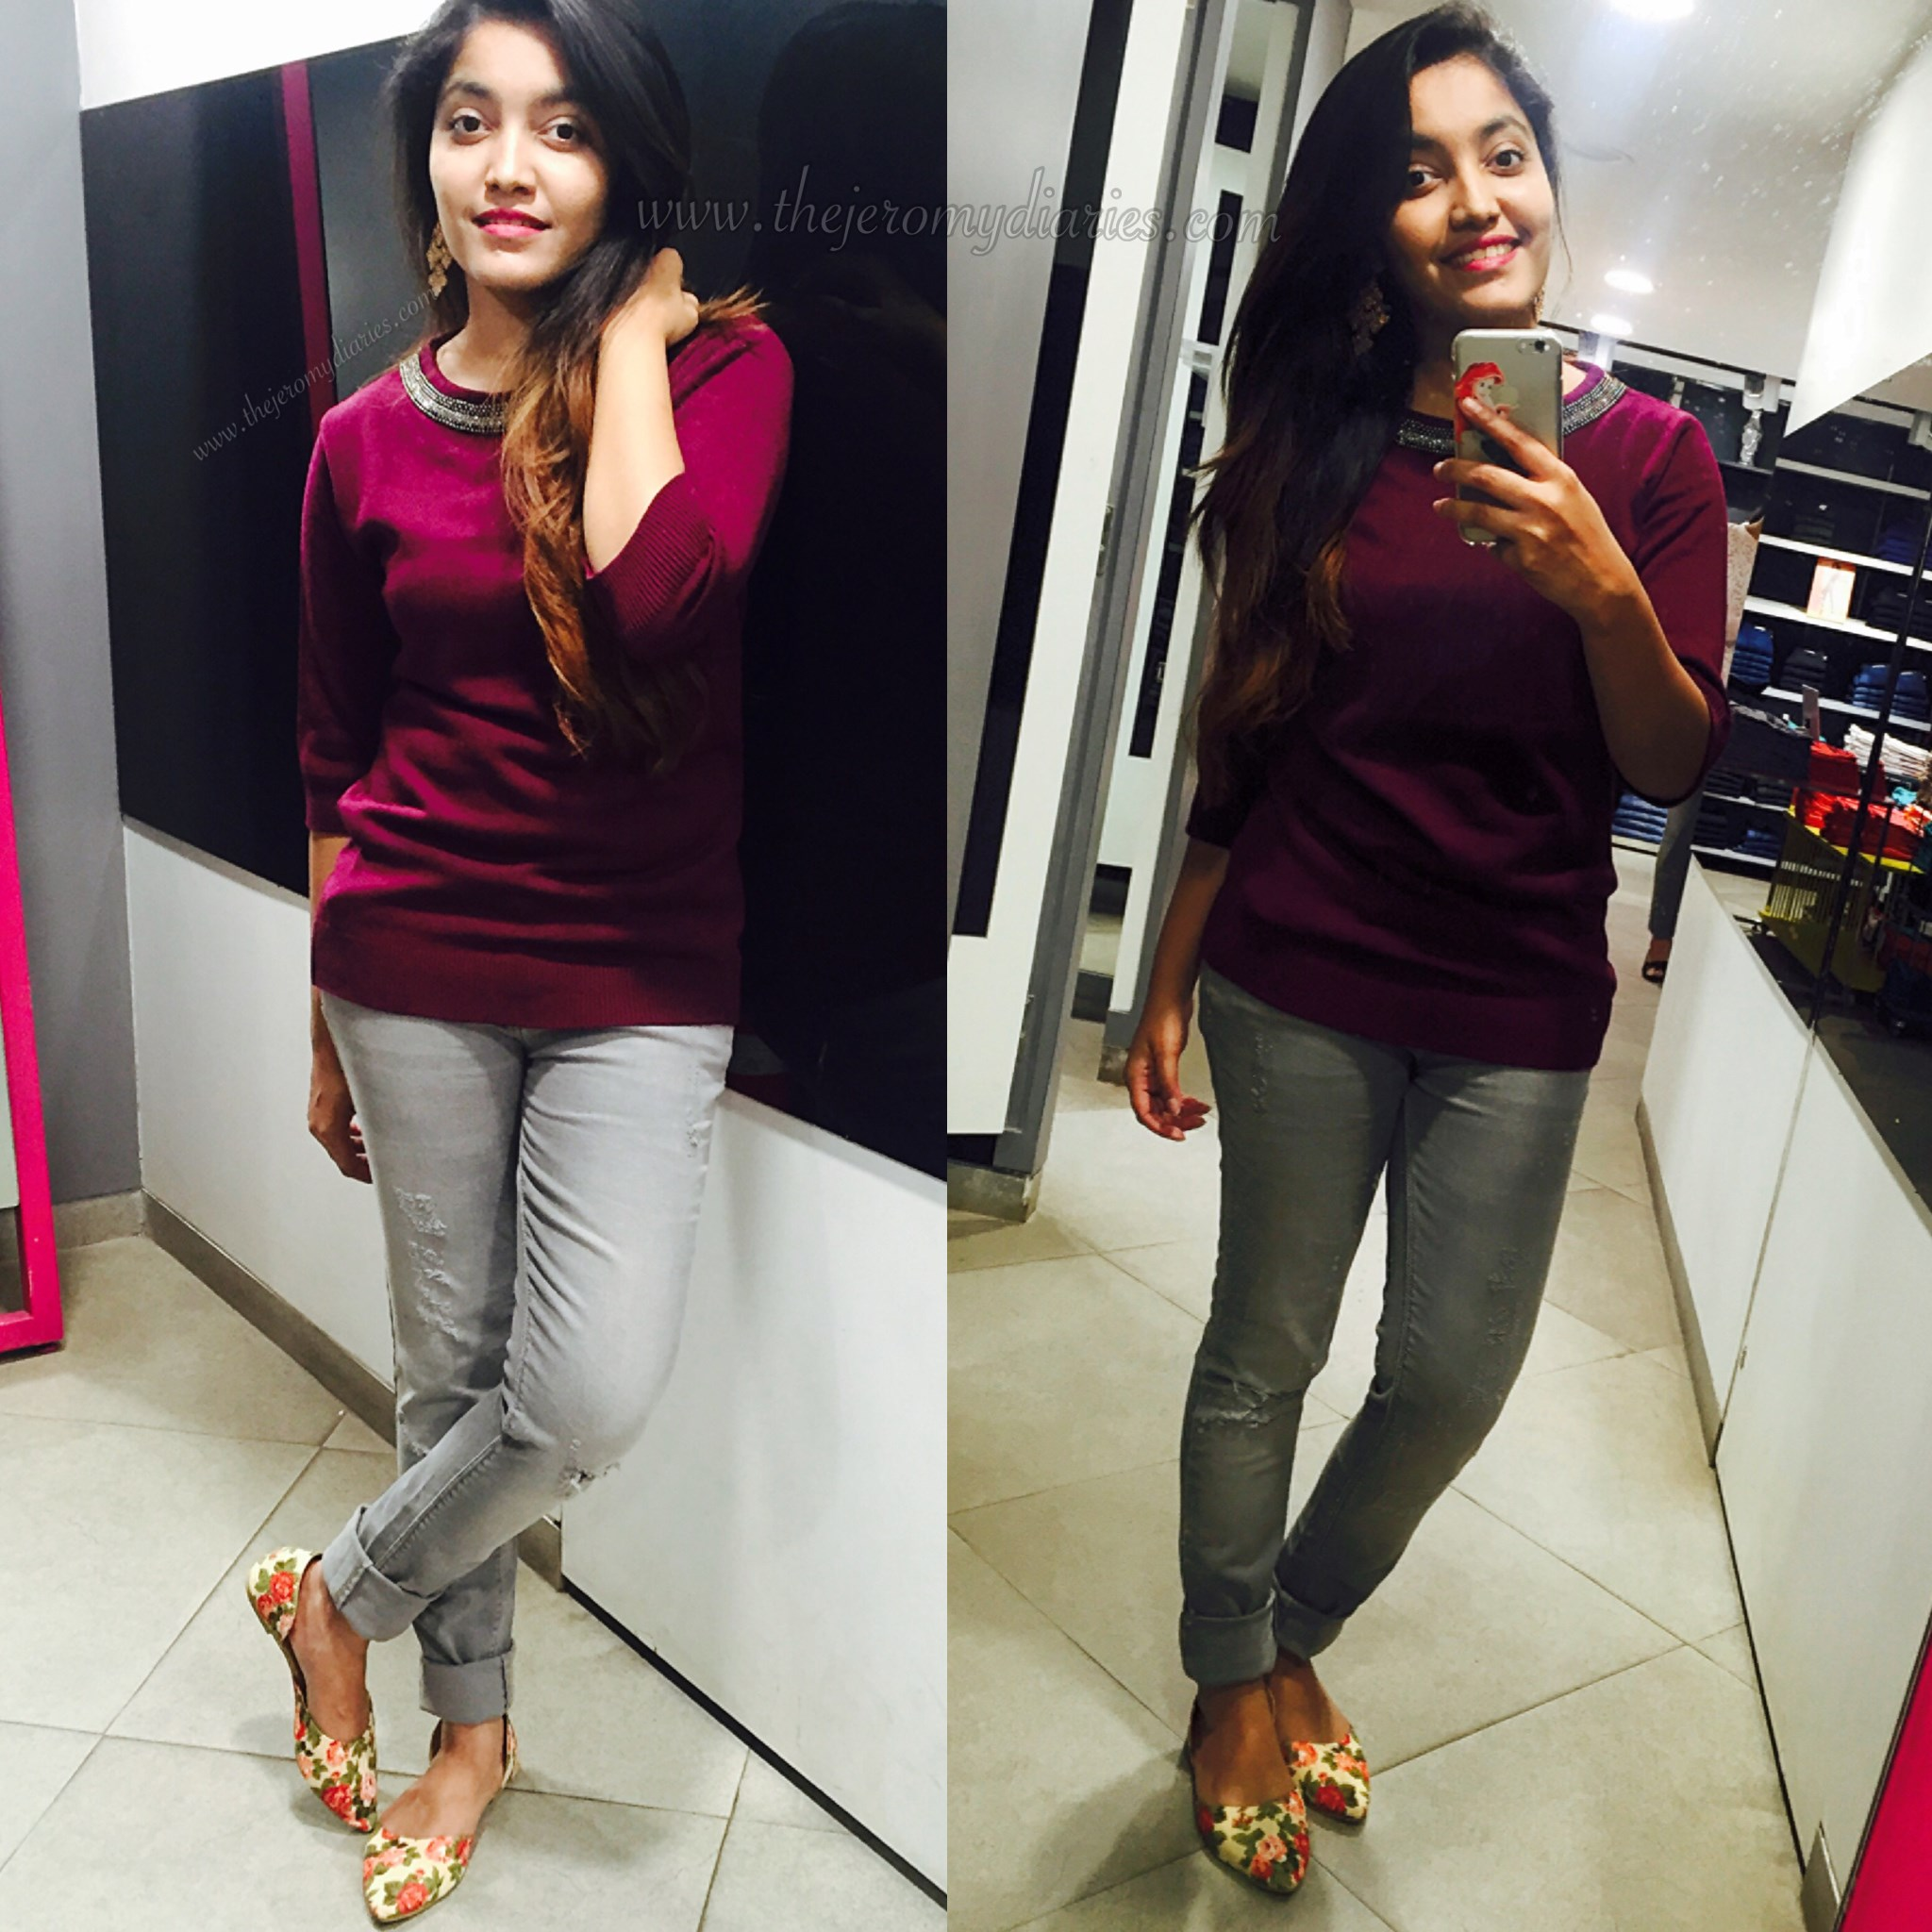 fashion blogger princy mascarenhas the jeromy diaries wearing miss universe collection by jealous 21 (2048 x 2048)